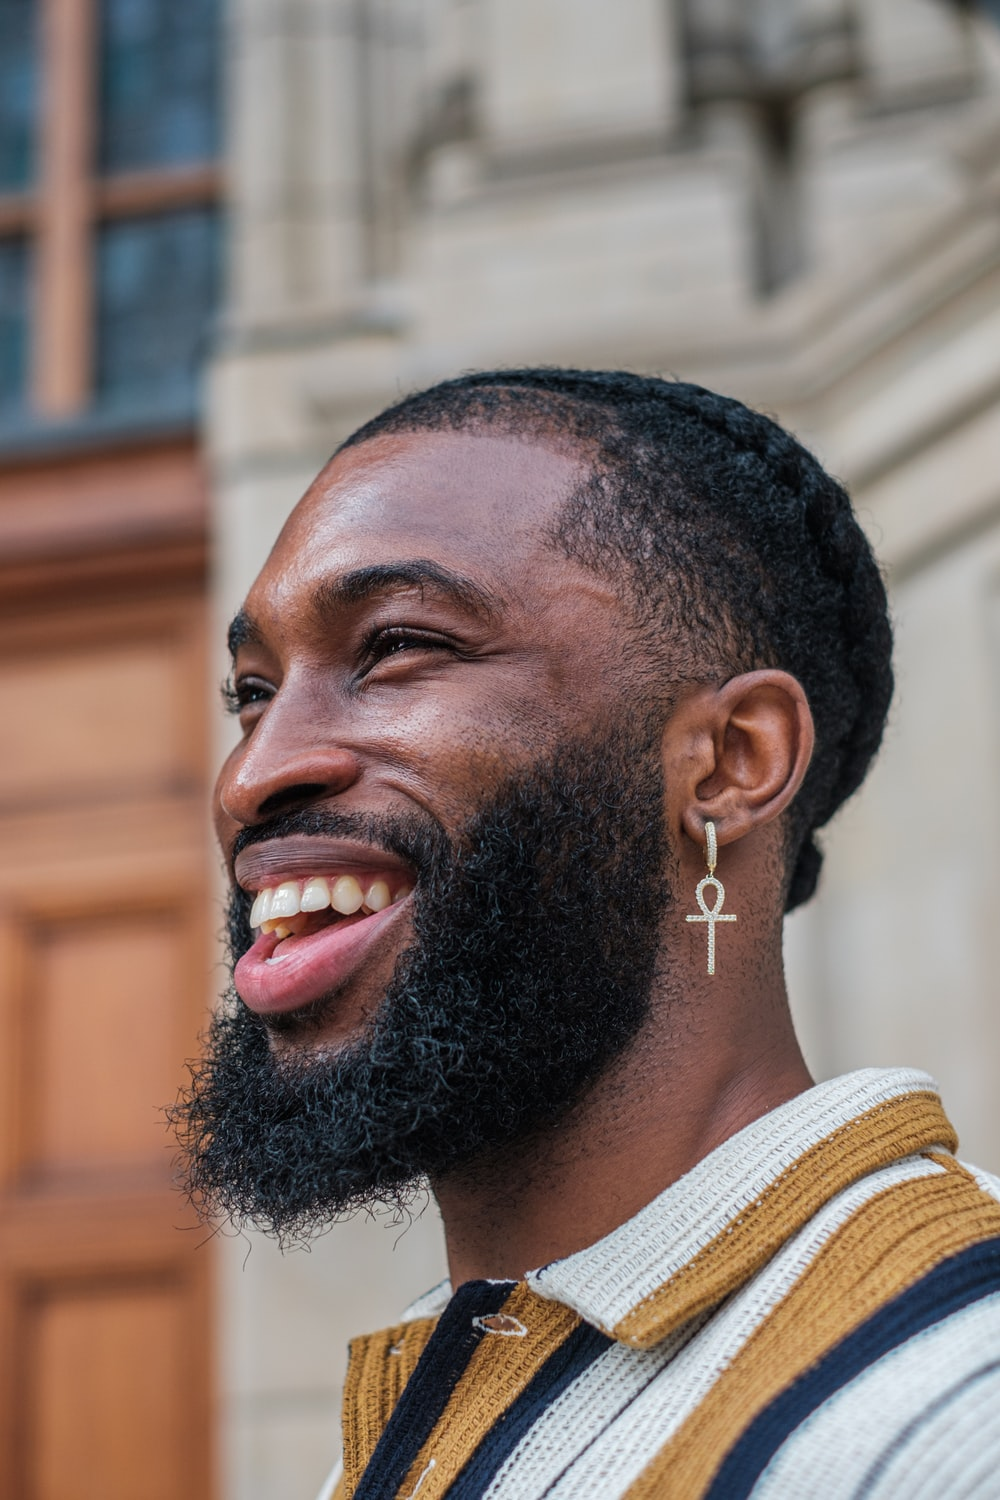 man in white and brown striped shirt smiling